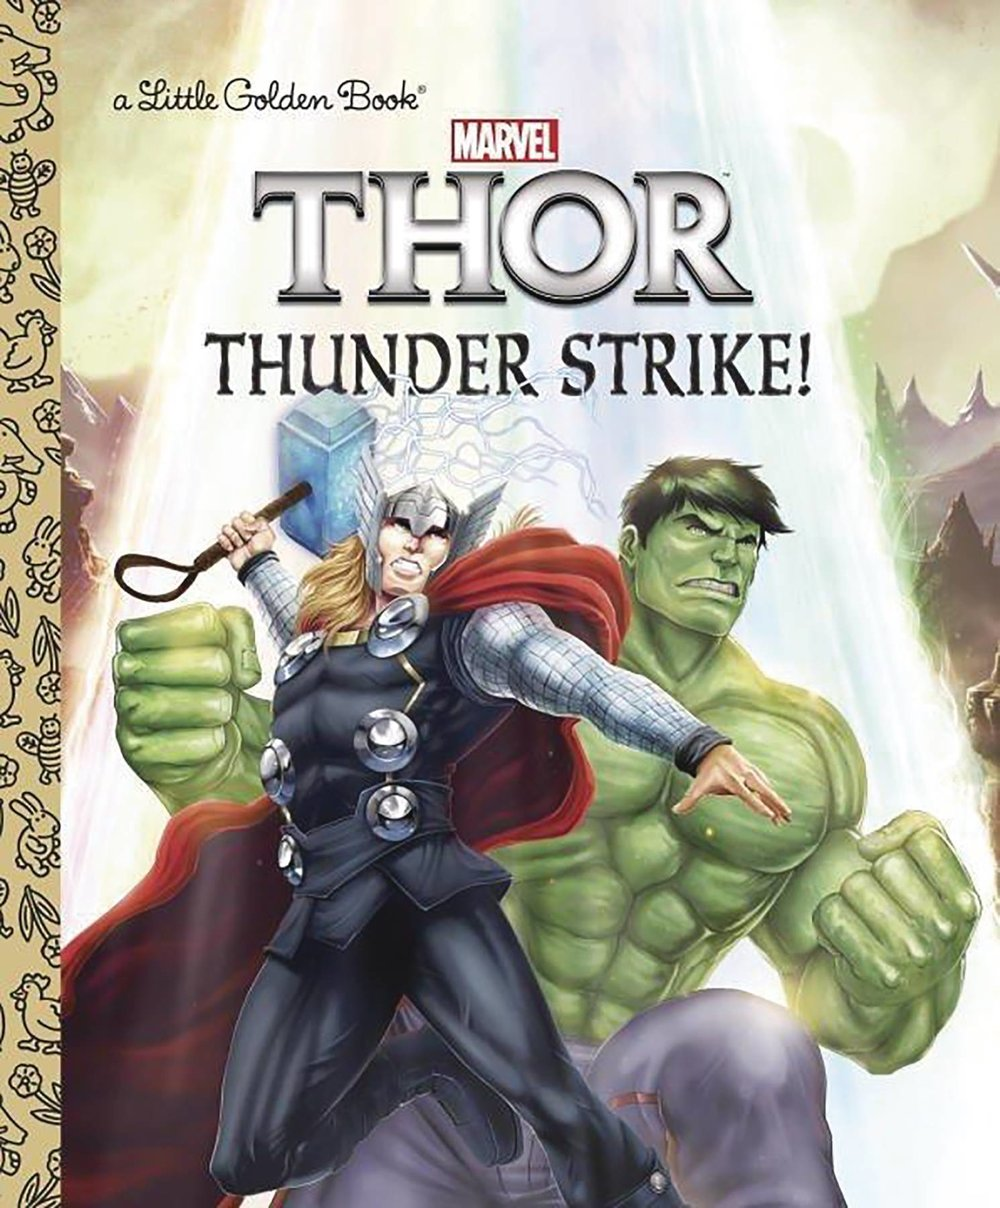 MIGHTY THOR LITTLE GOLDEN BOOK THUNDER STRIKE.jpg